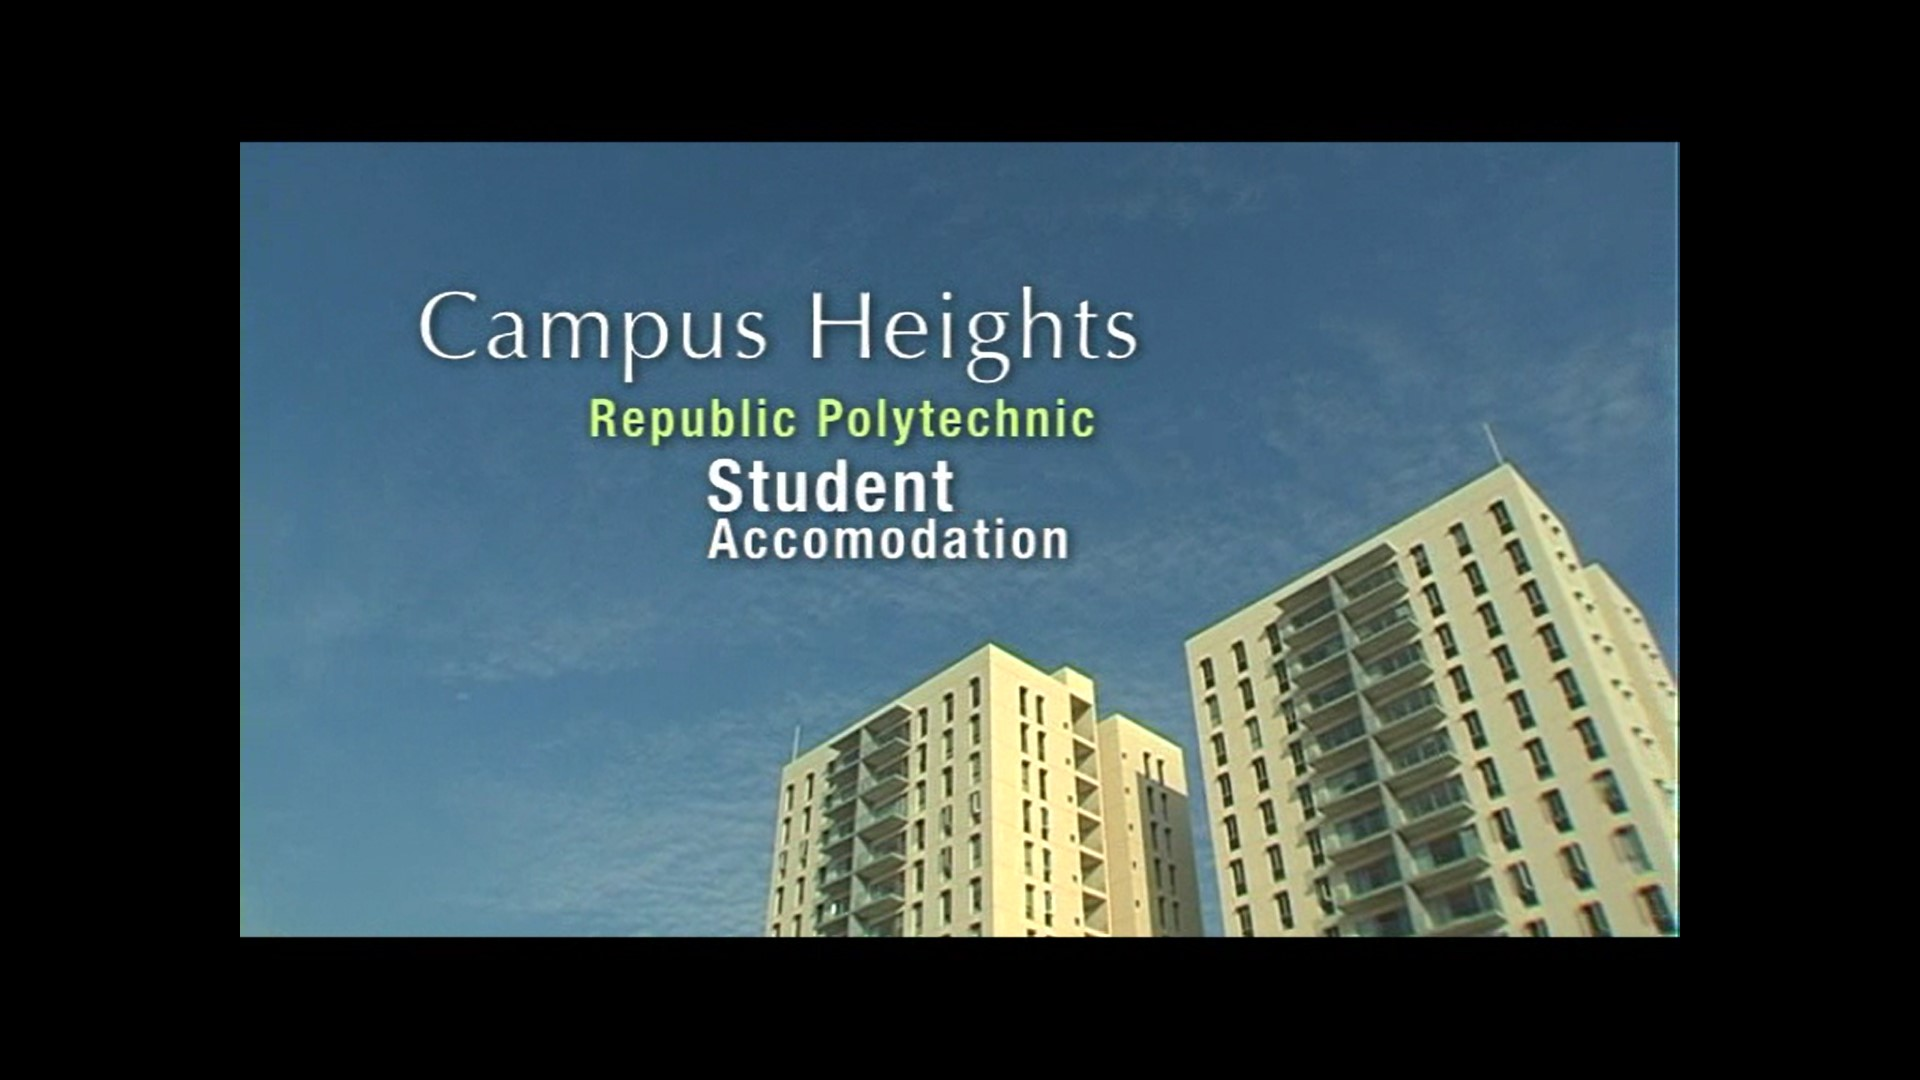 Campus Heights